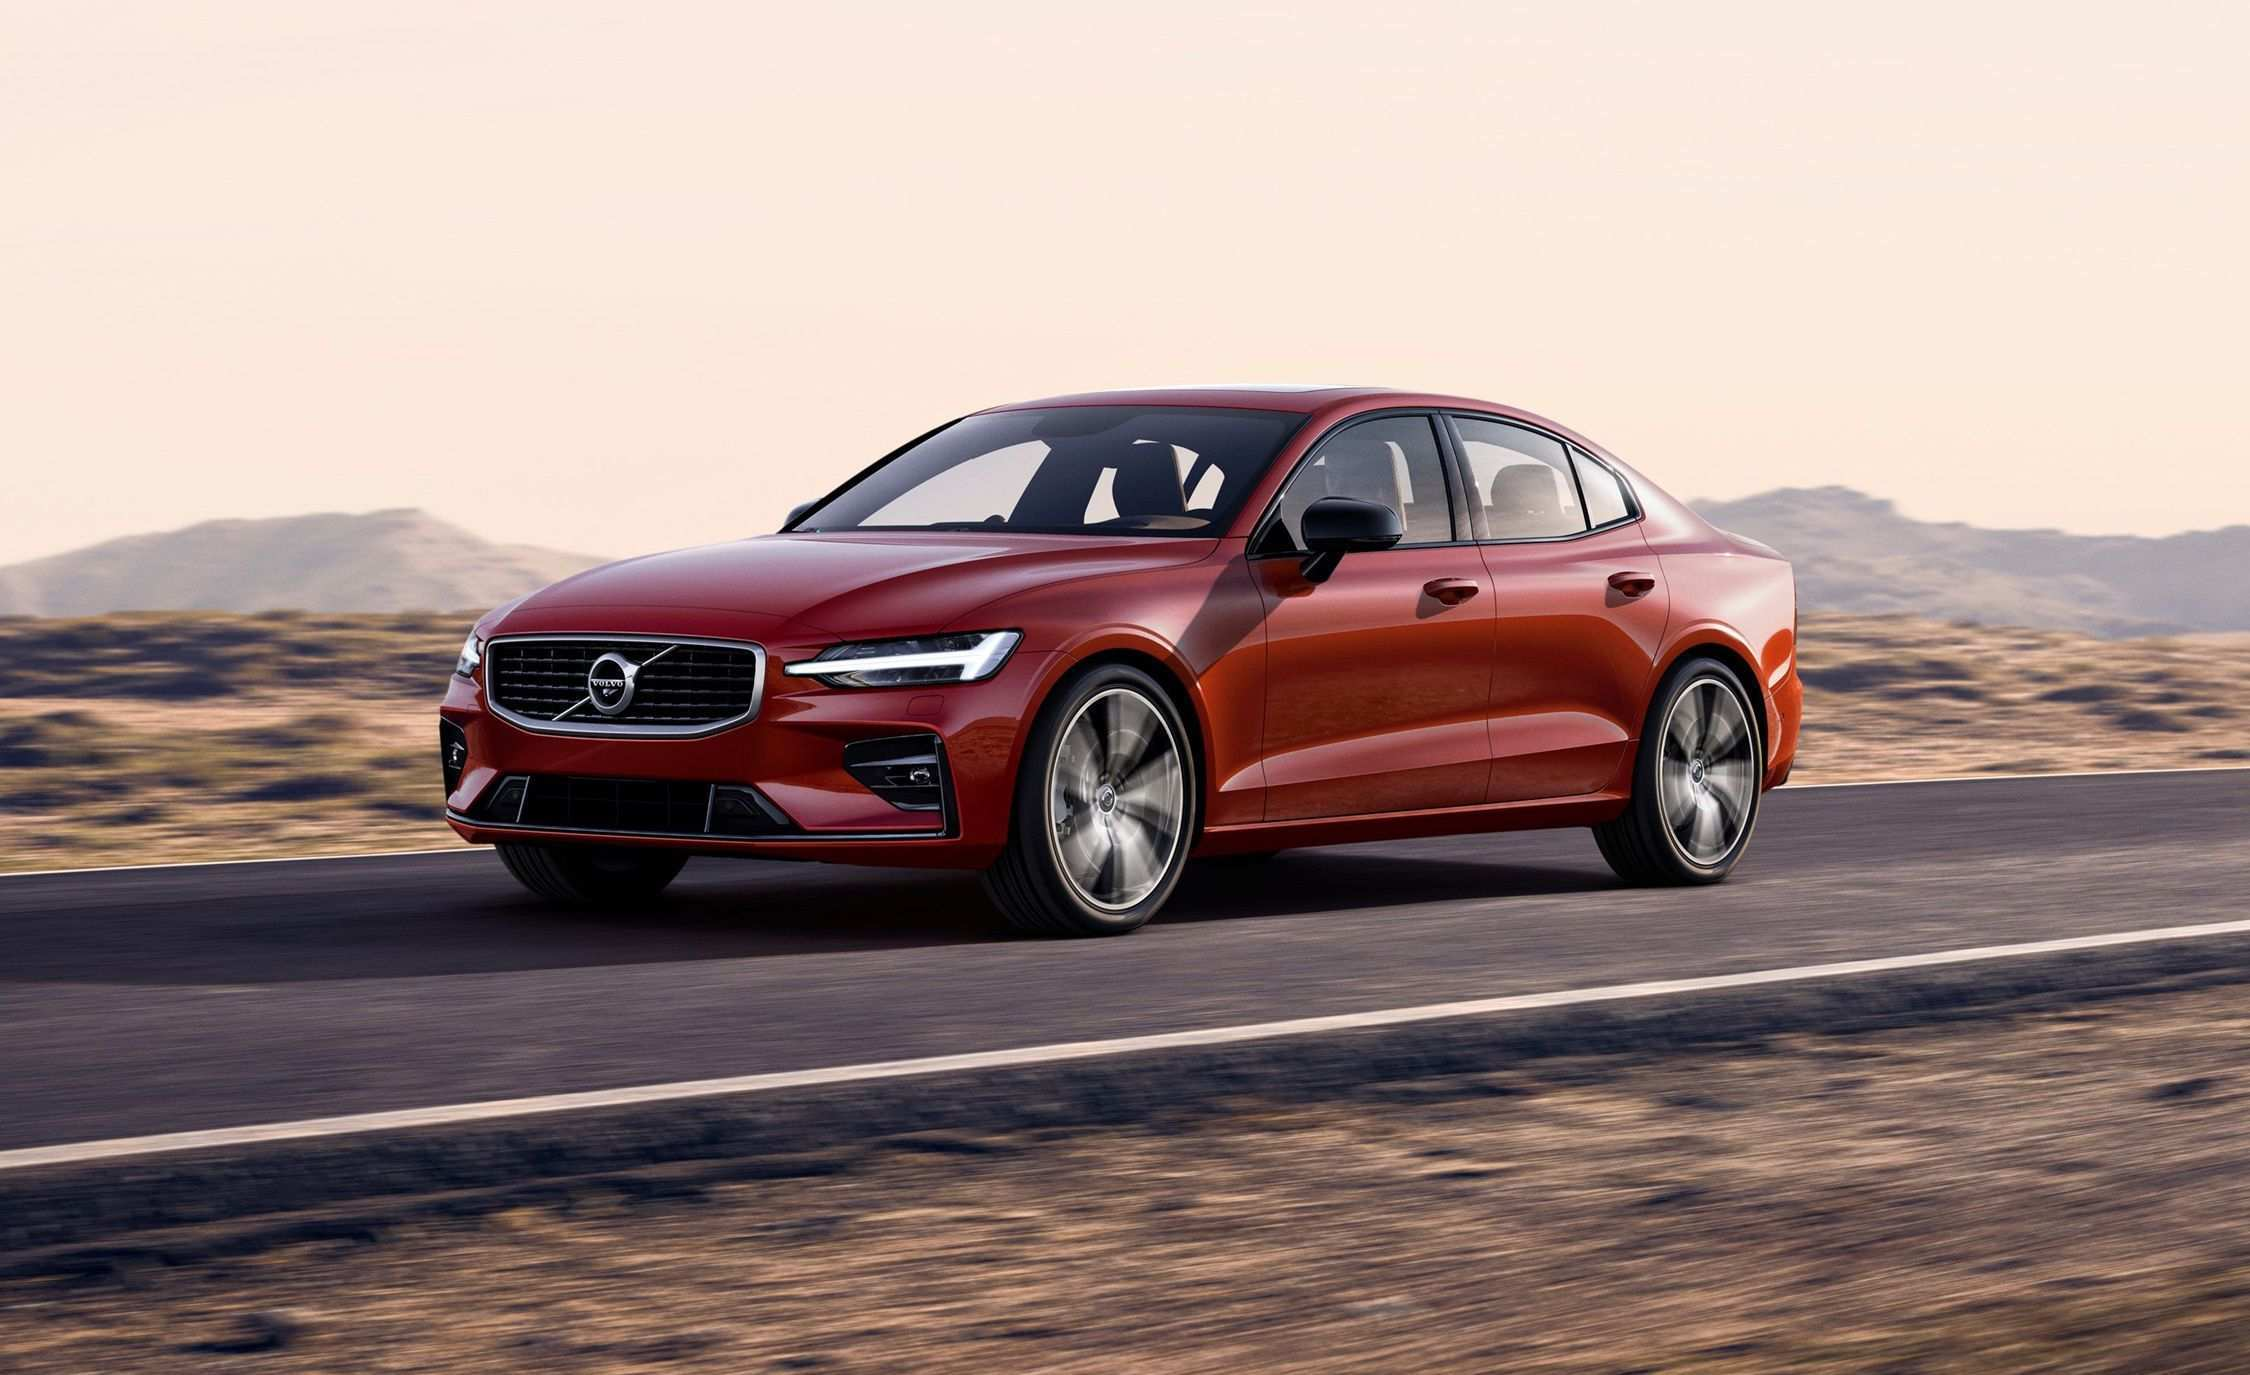 16 Great New Volvo New S60 2019 Release Date And Specs Reviews with New Volvo New S60 2019 Release Date And Specs